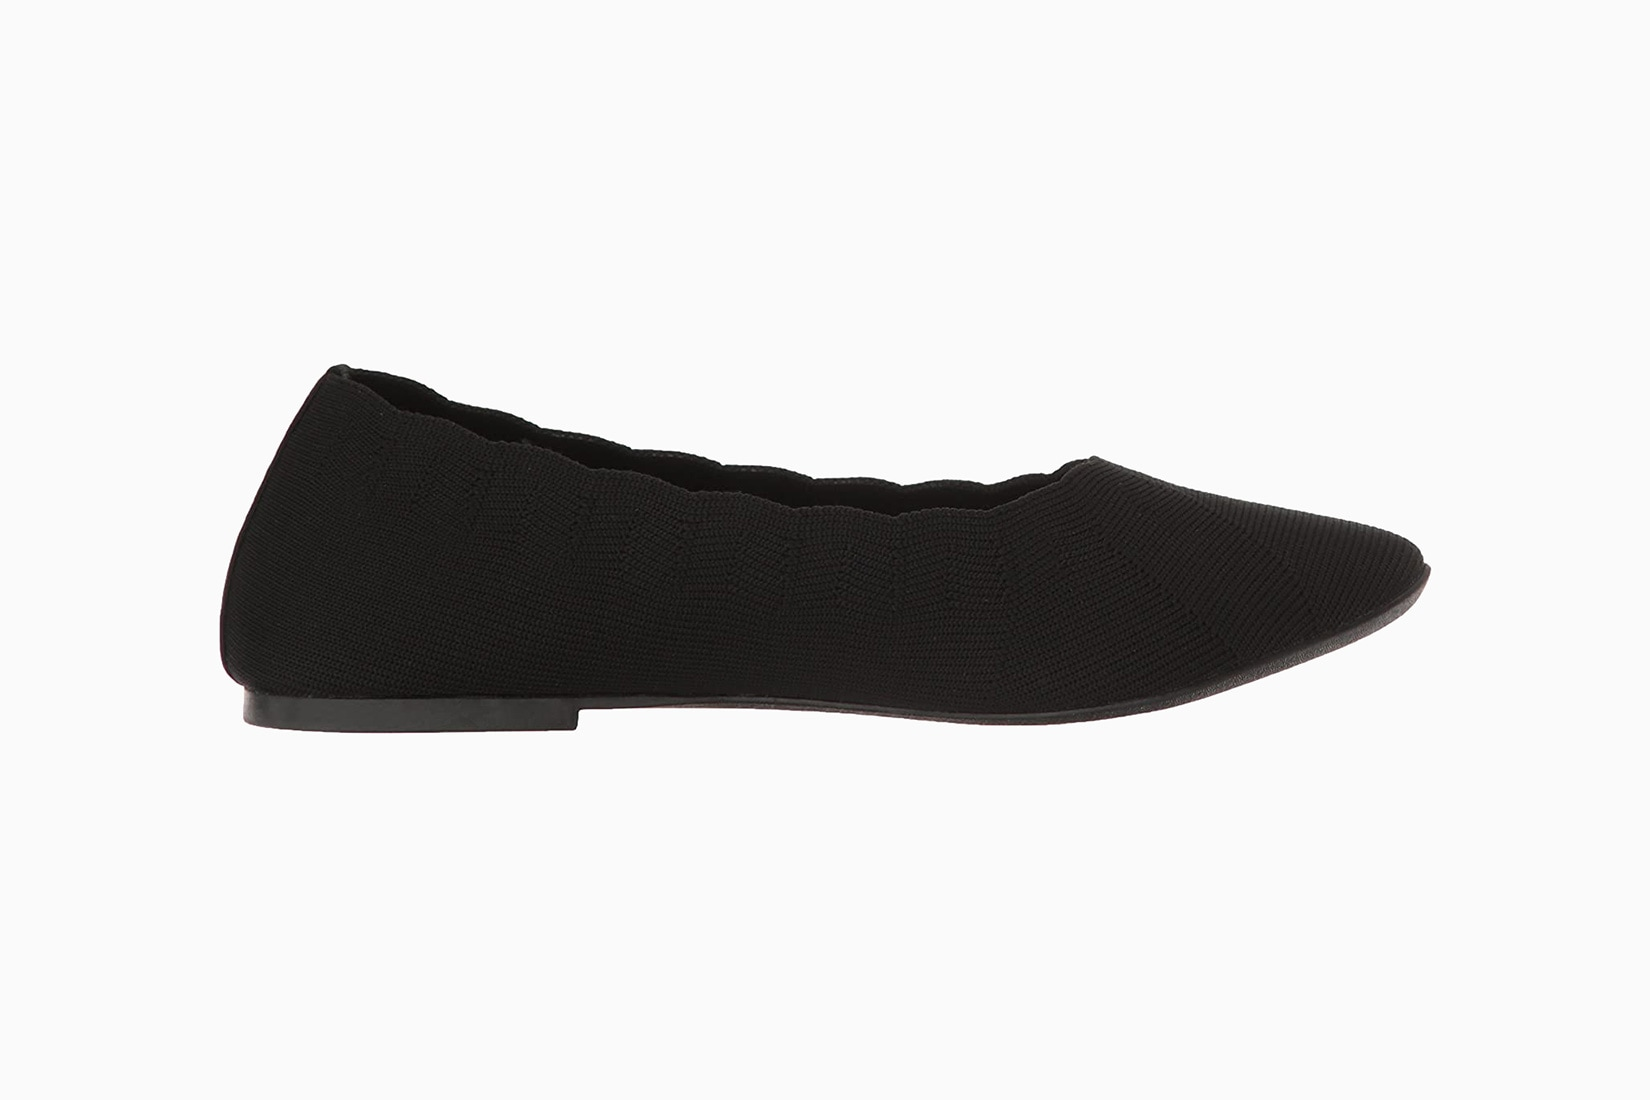 most comfortable flats women arch support skechers review - Luxe Digital